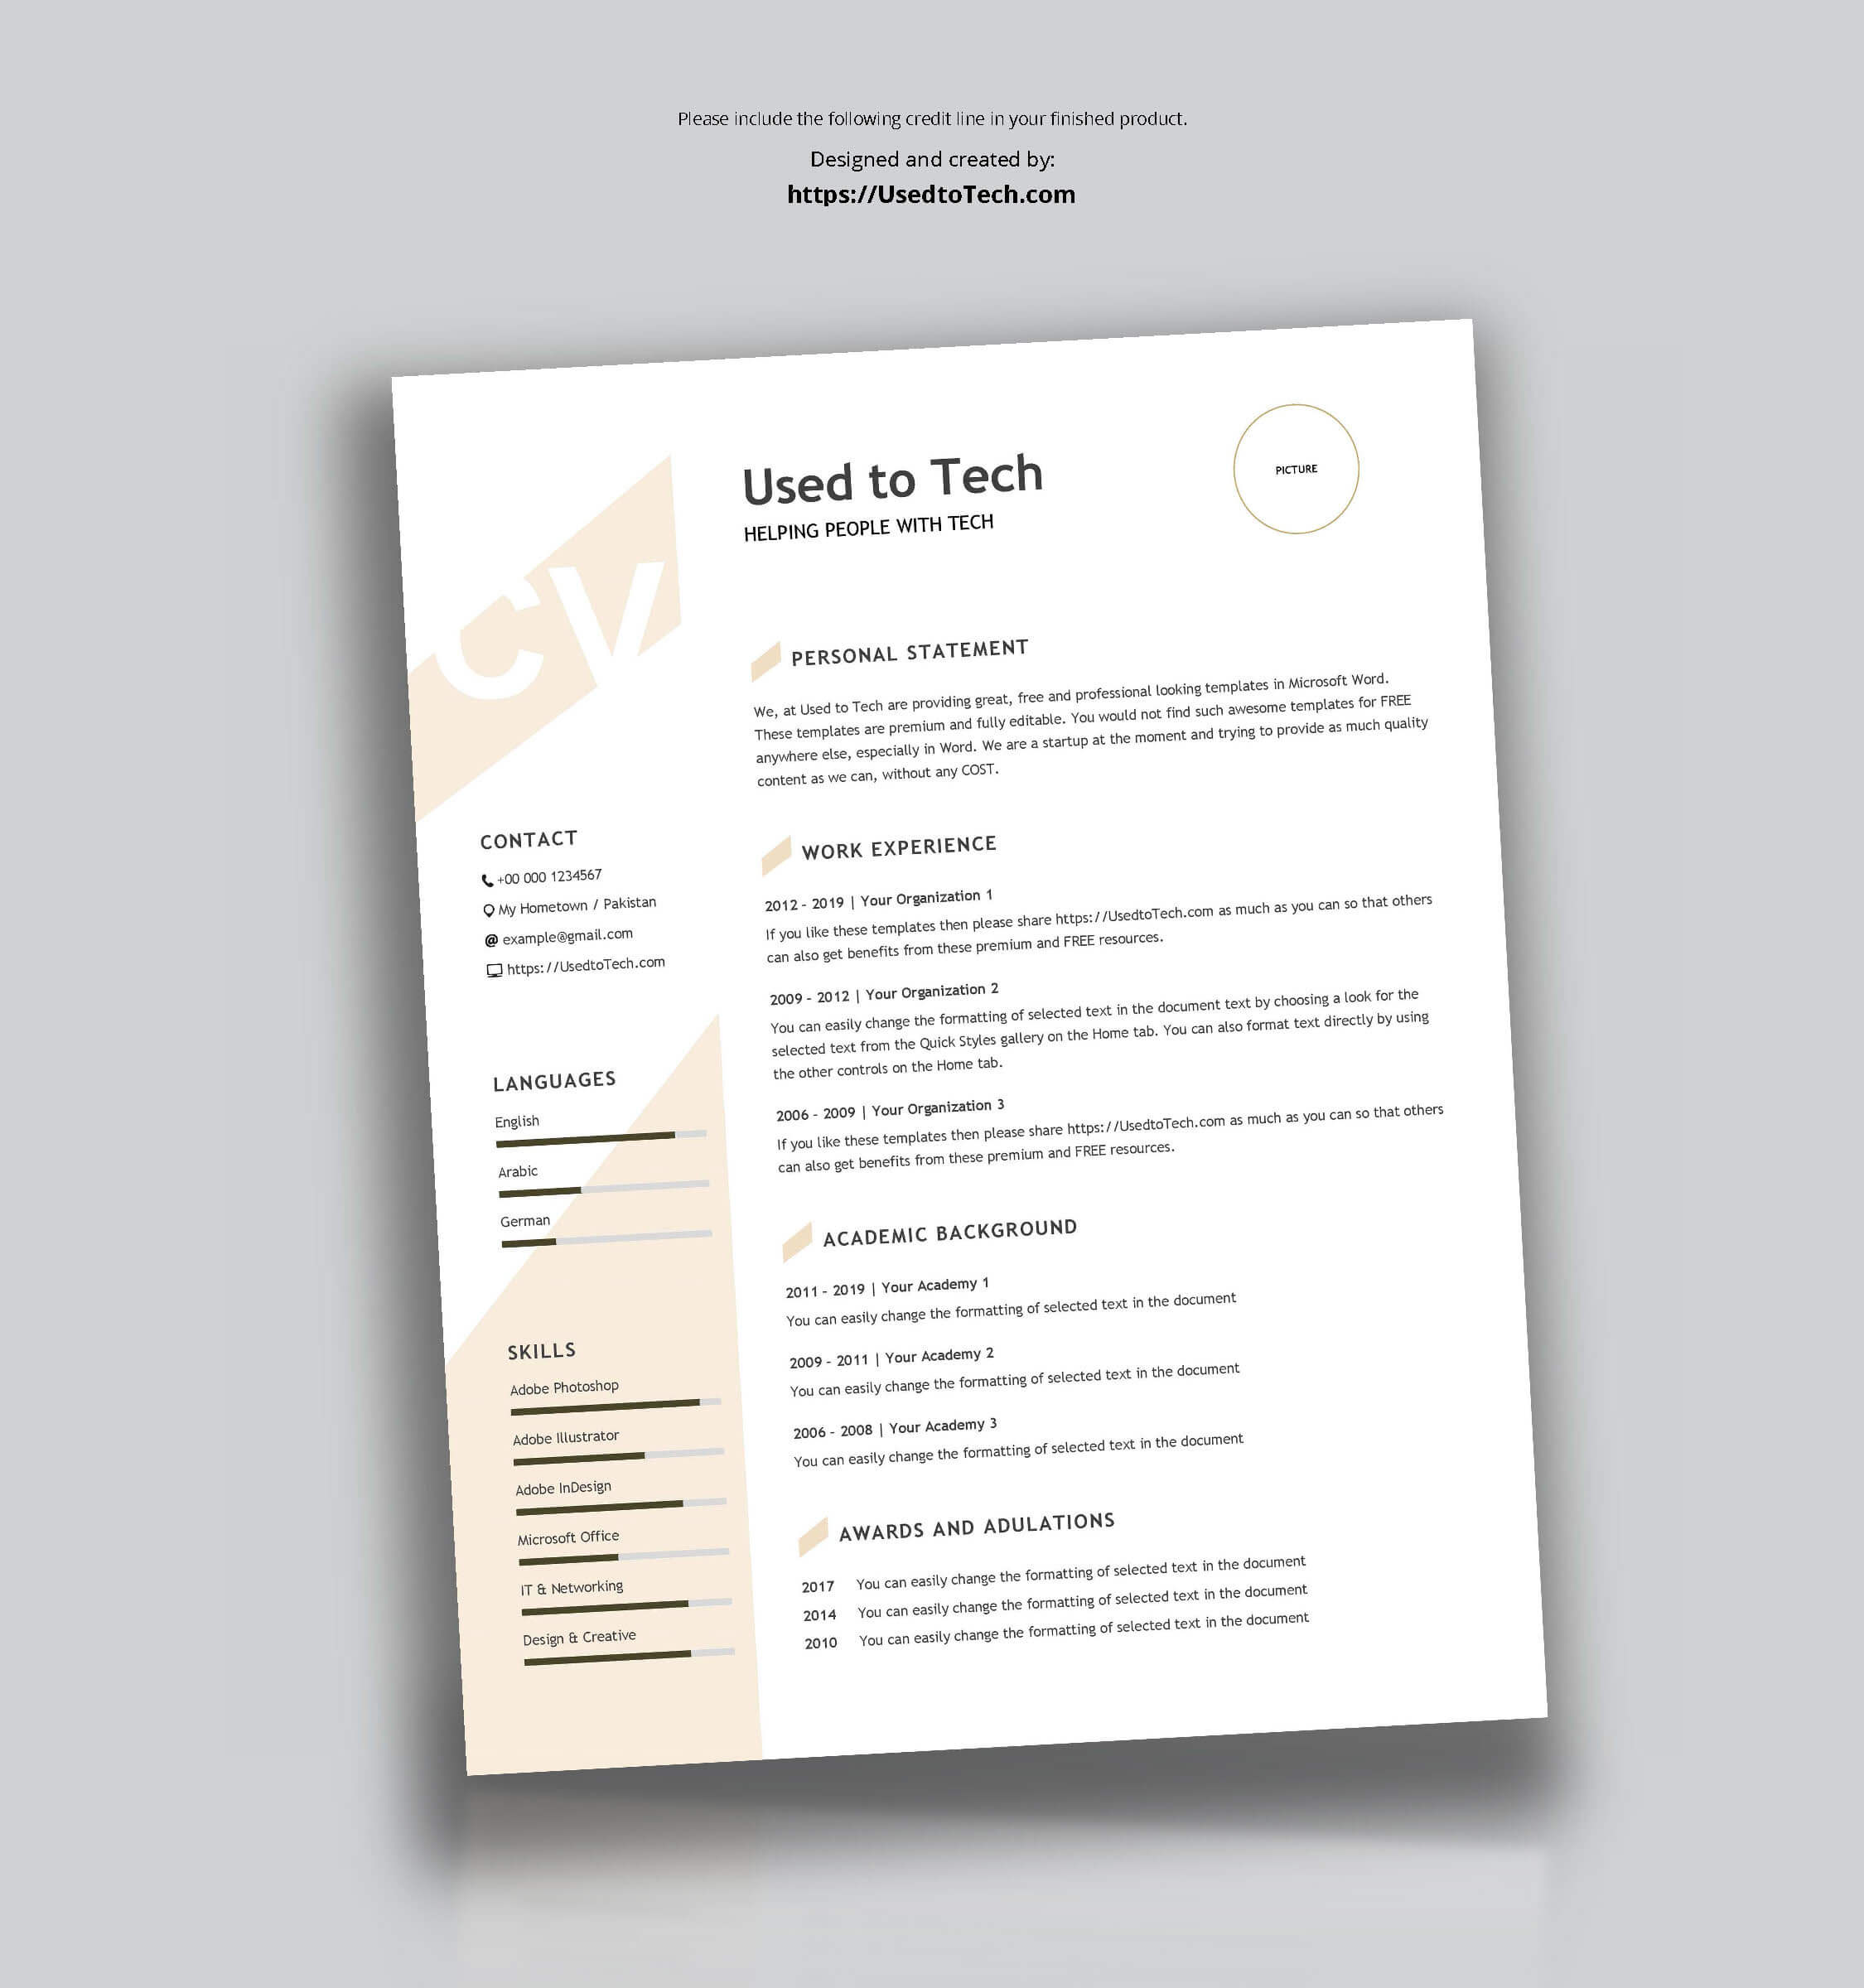 Modern Resume Template In Word Free - Used To Tech Within How To Get A Resume Template On Word